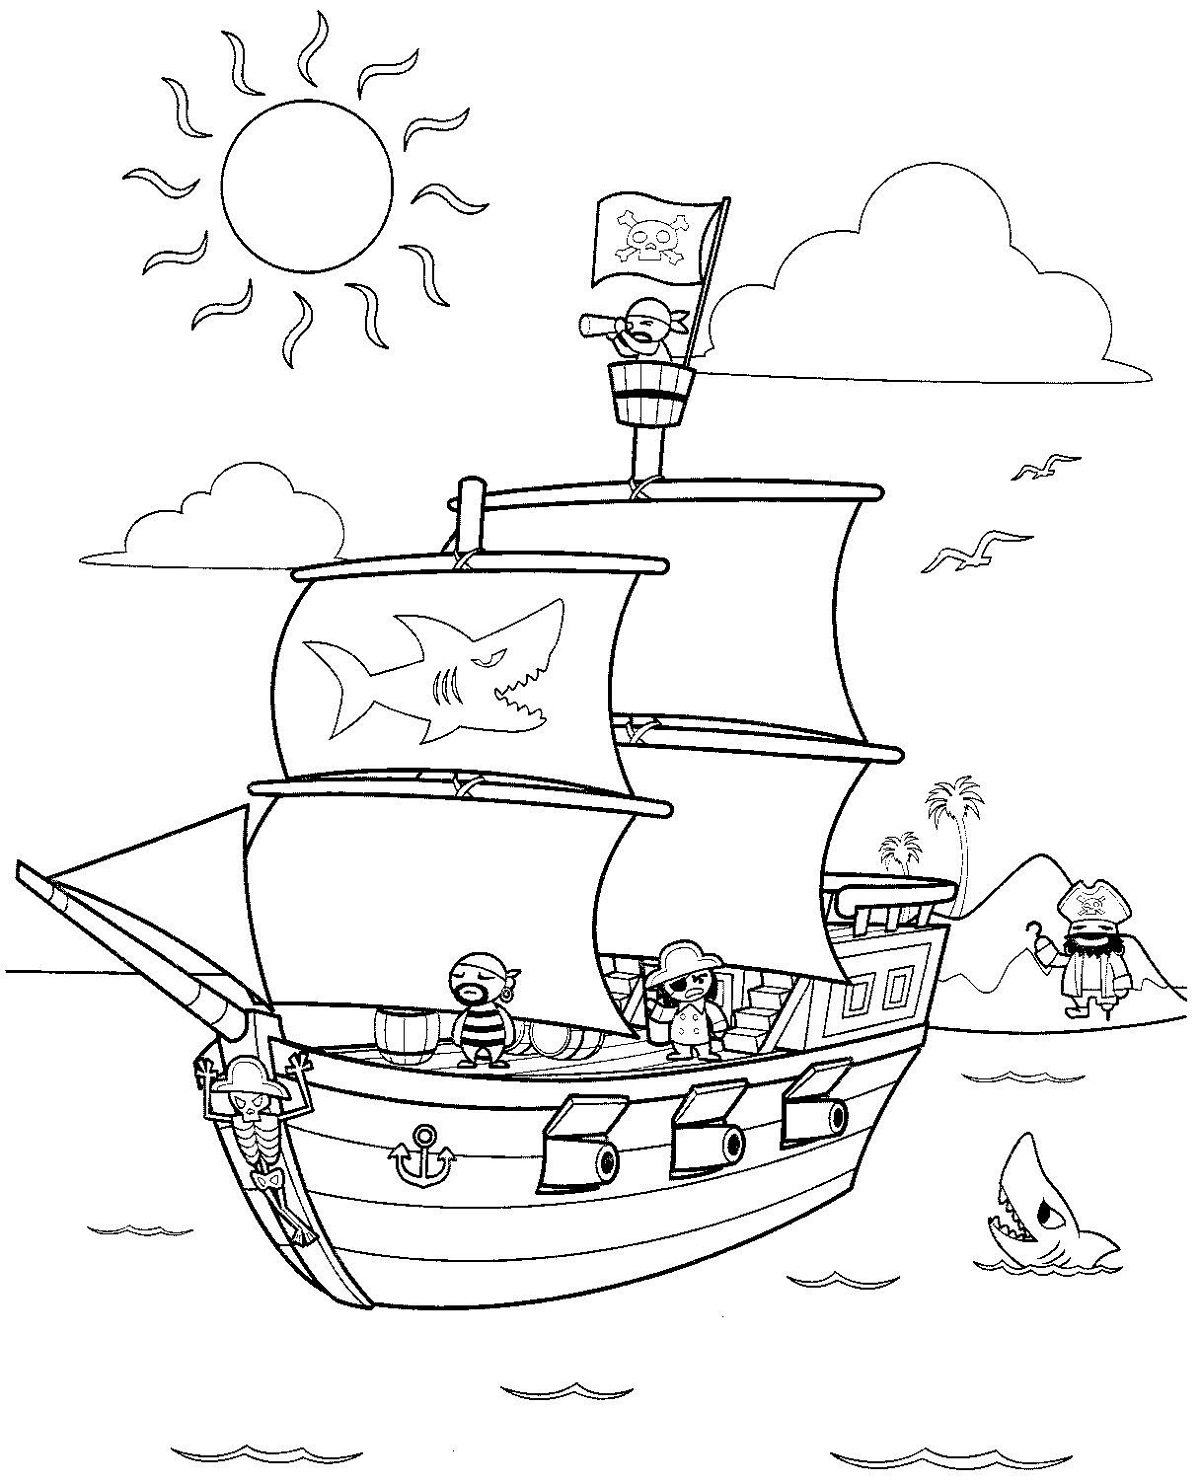 pirate-color-pages-activity